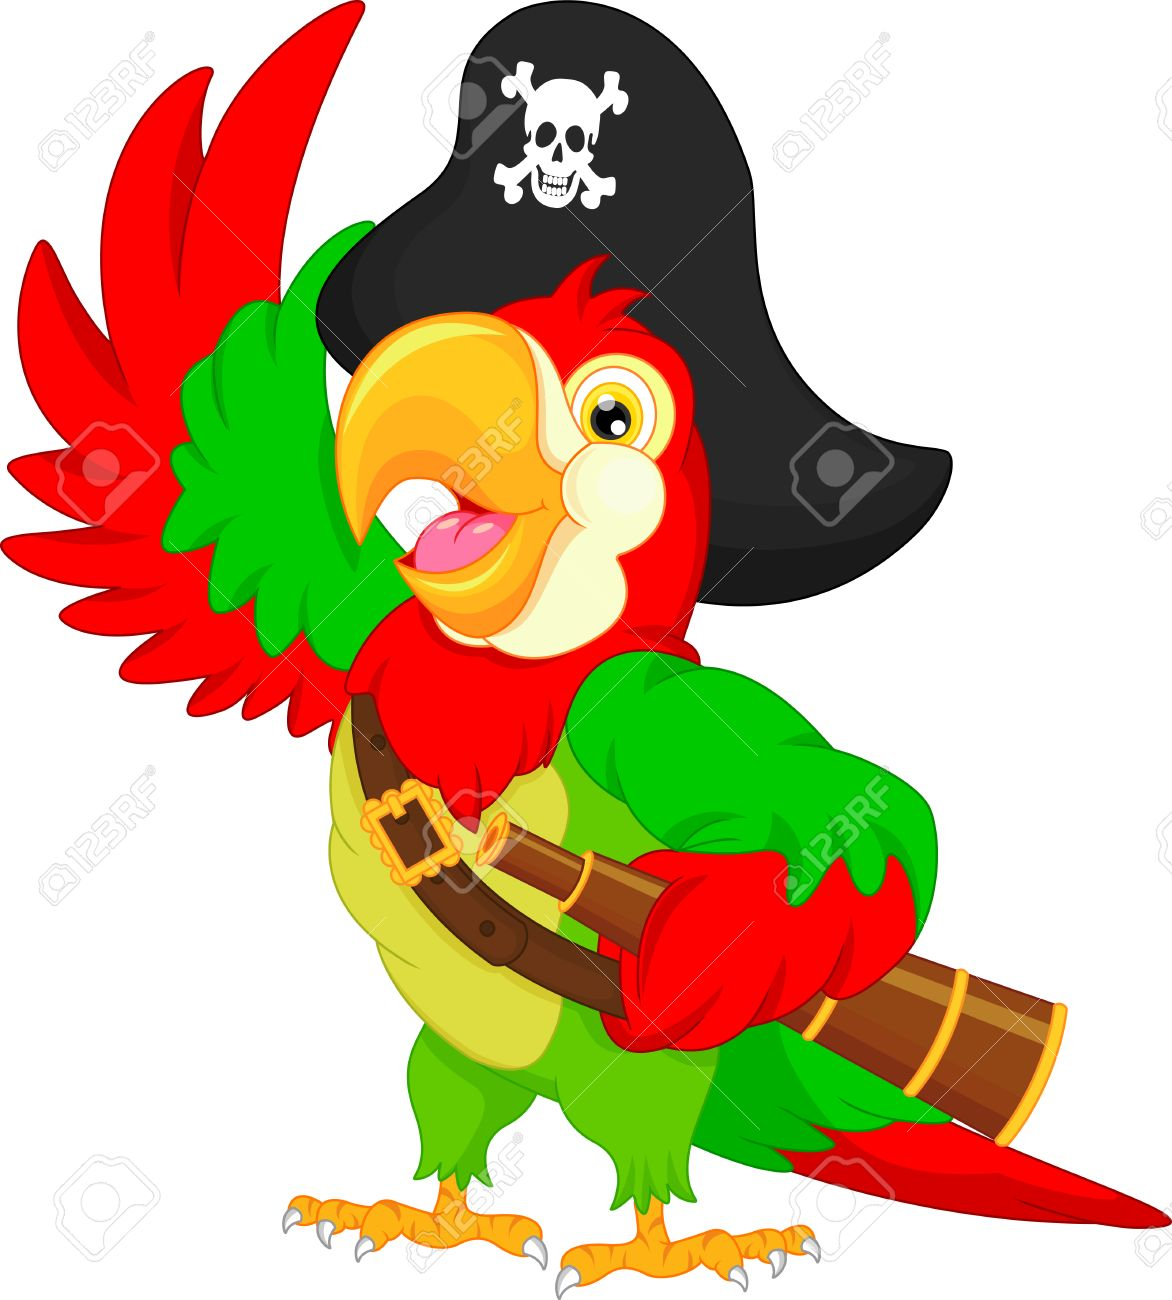 Pirate parrot clipart 2 » Clipart Station.